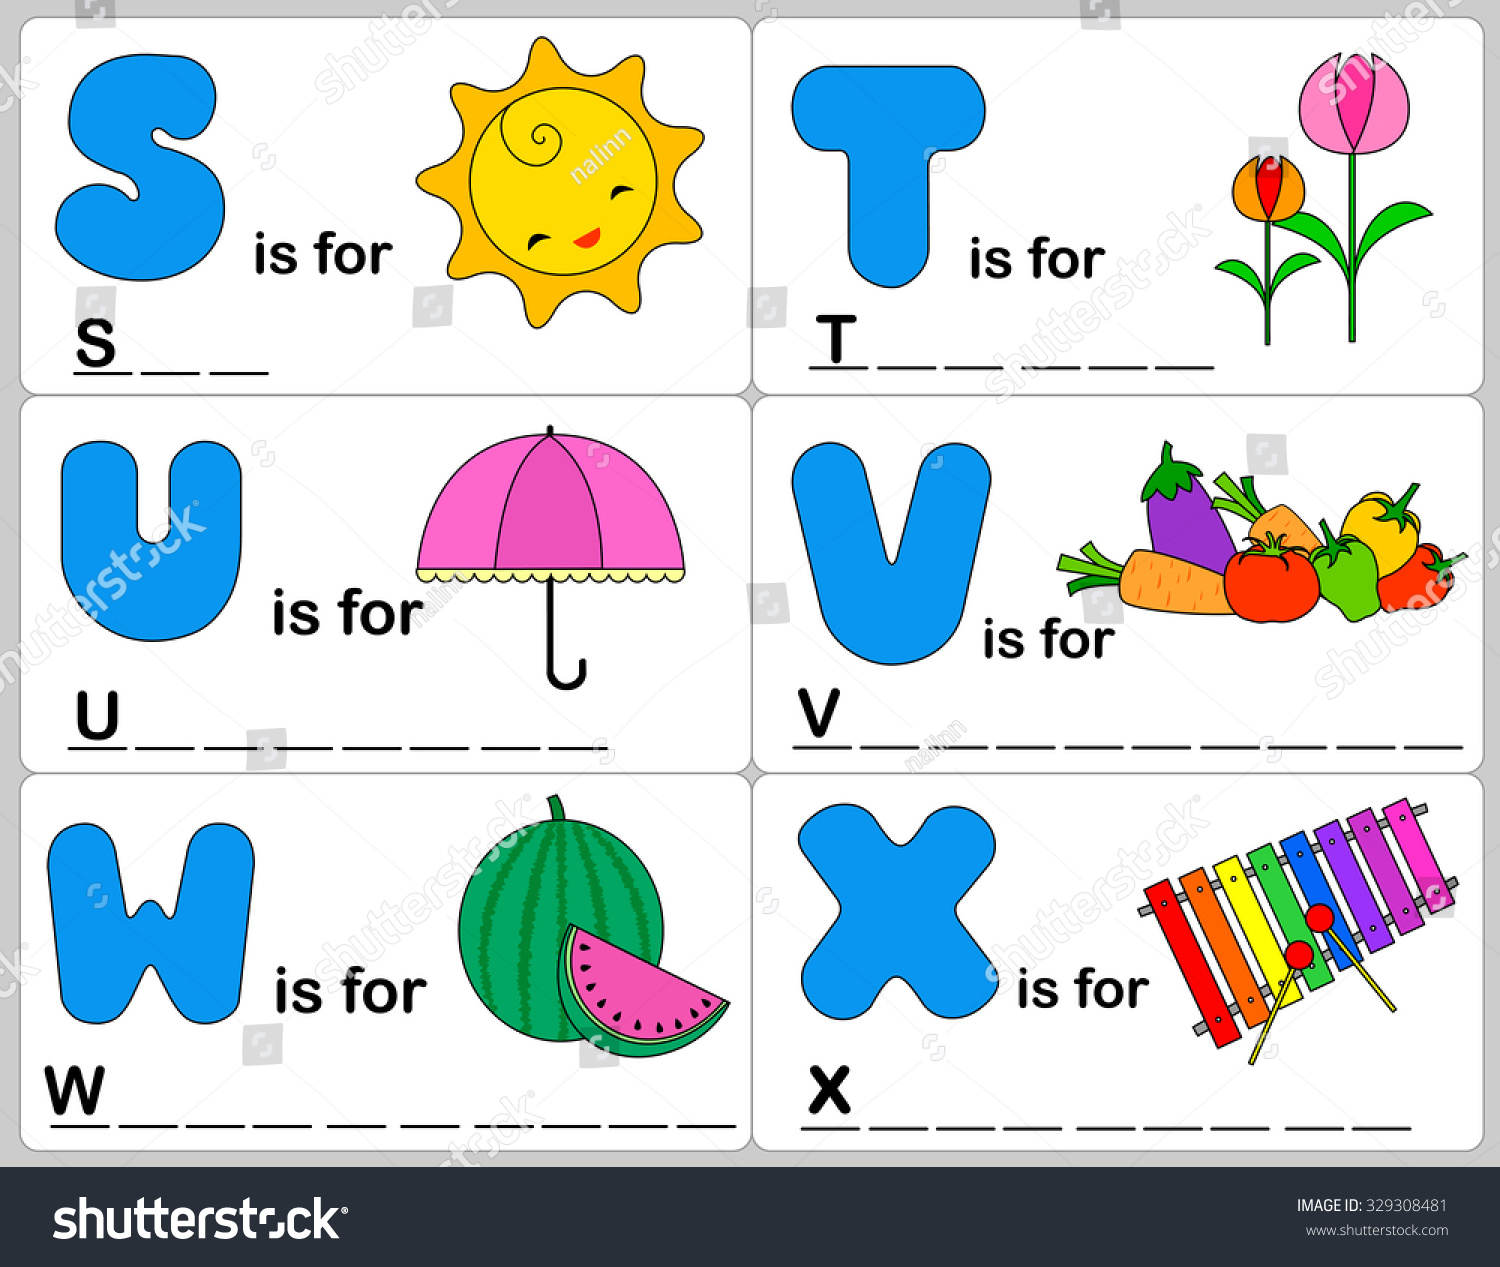 Kids Words Learning Game Worksheets With Simple Colorful